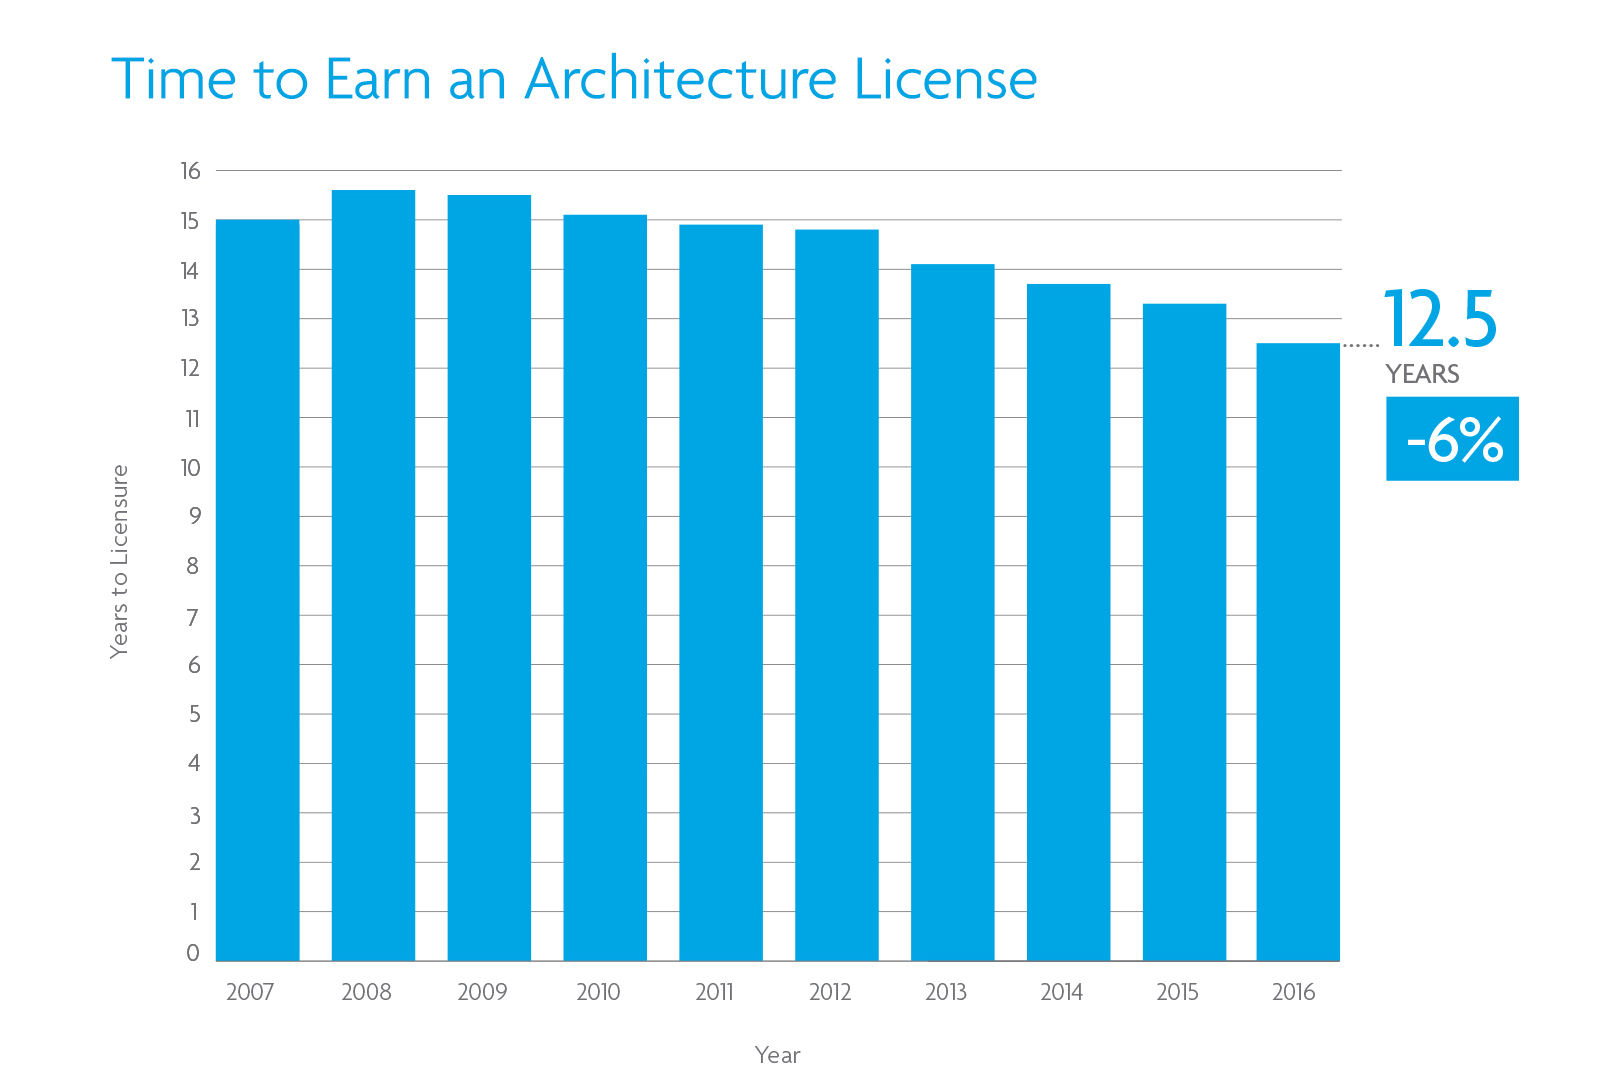 Ncarb time to licensure drops 96 months in 2016 architect ncarb time to licensure drops 96 months in 2016 architect magazine licensing and certification ncarb xflitez Choice Image